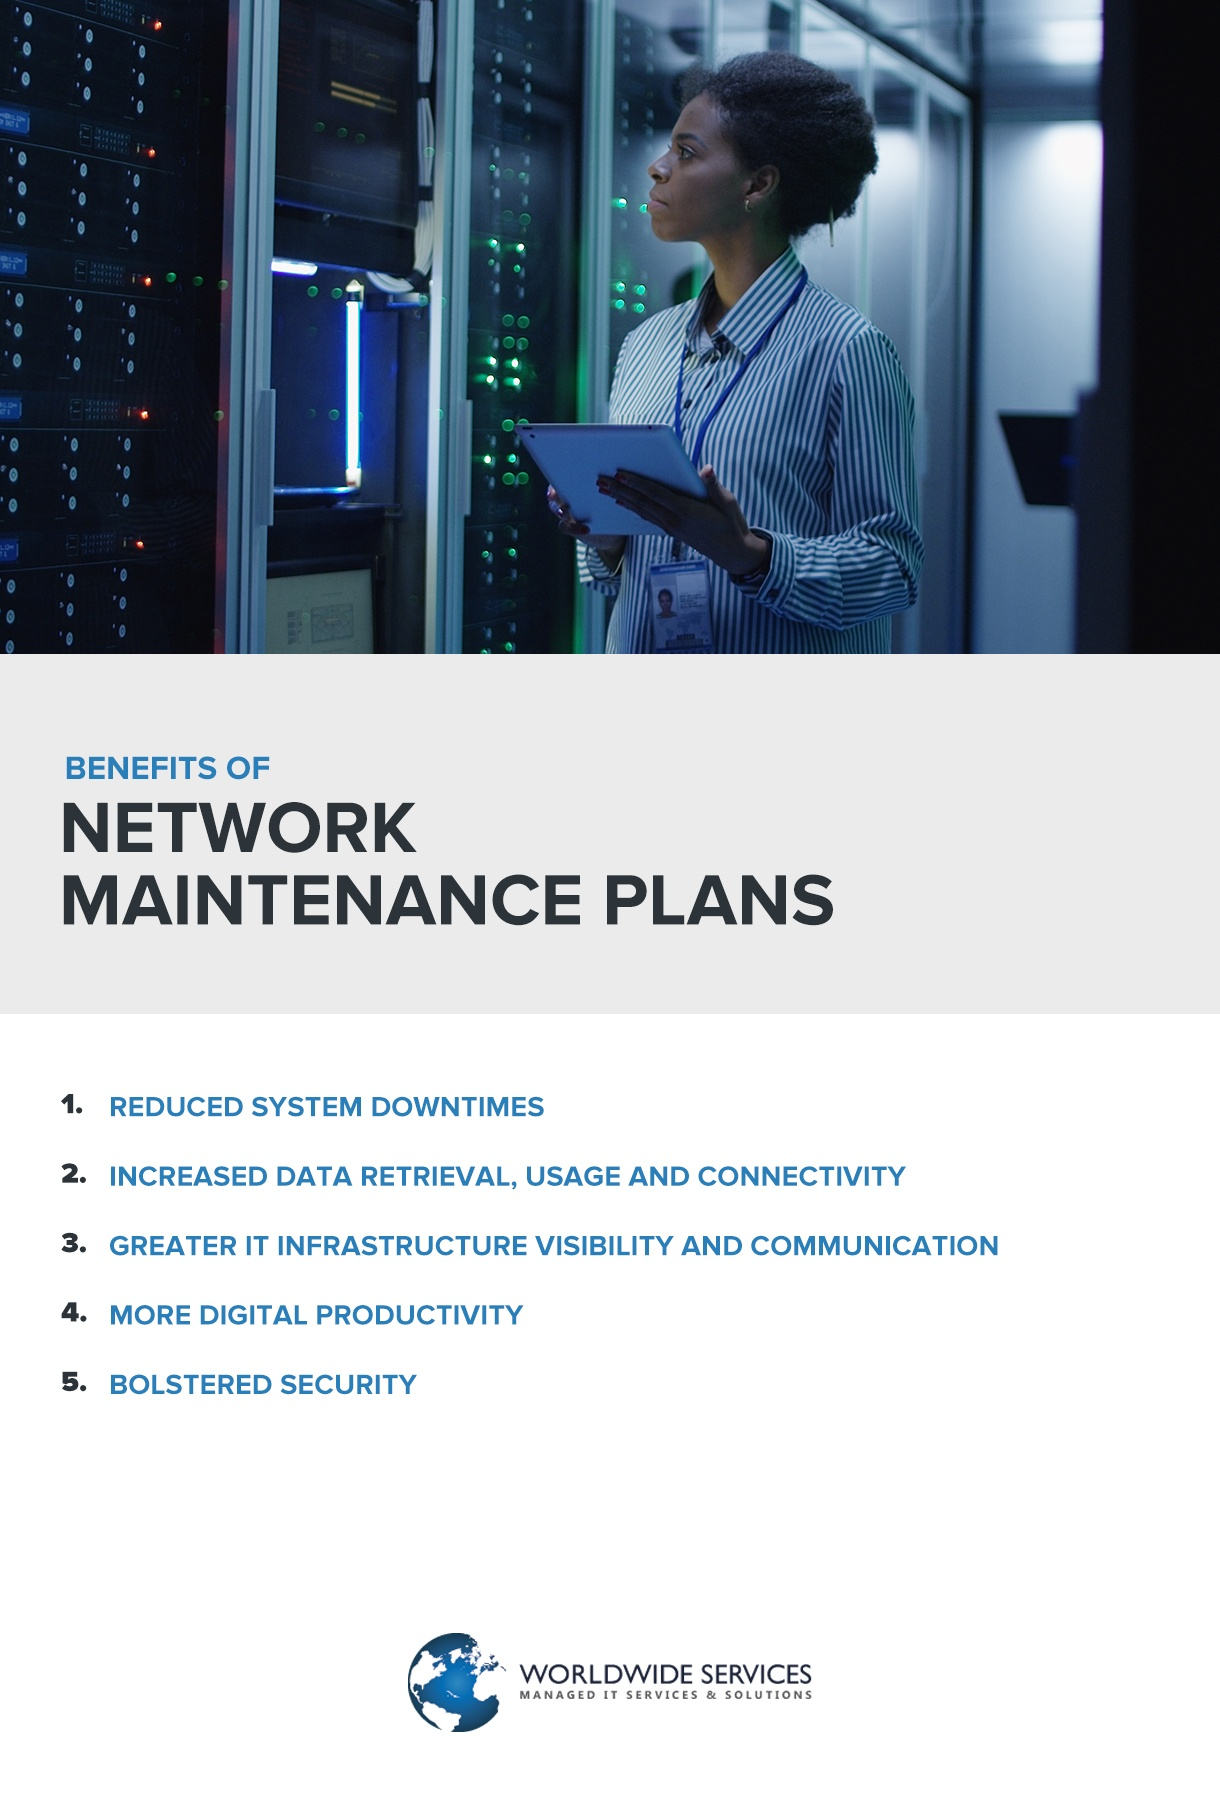 benefits of a network maintenance plans